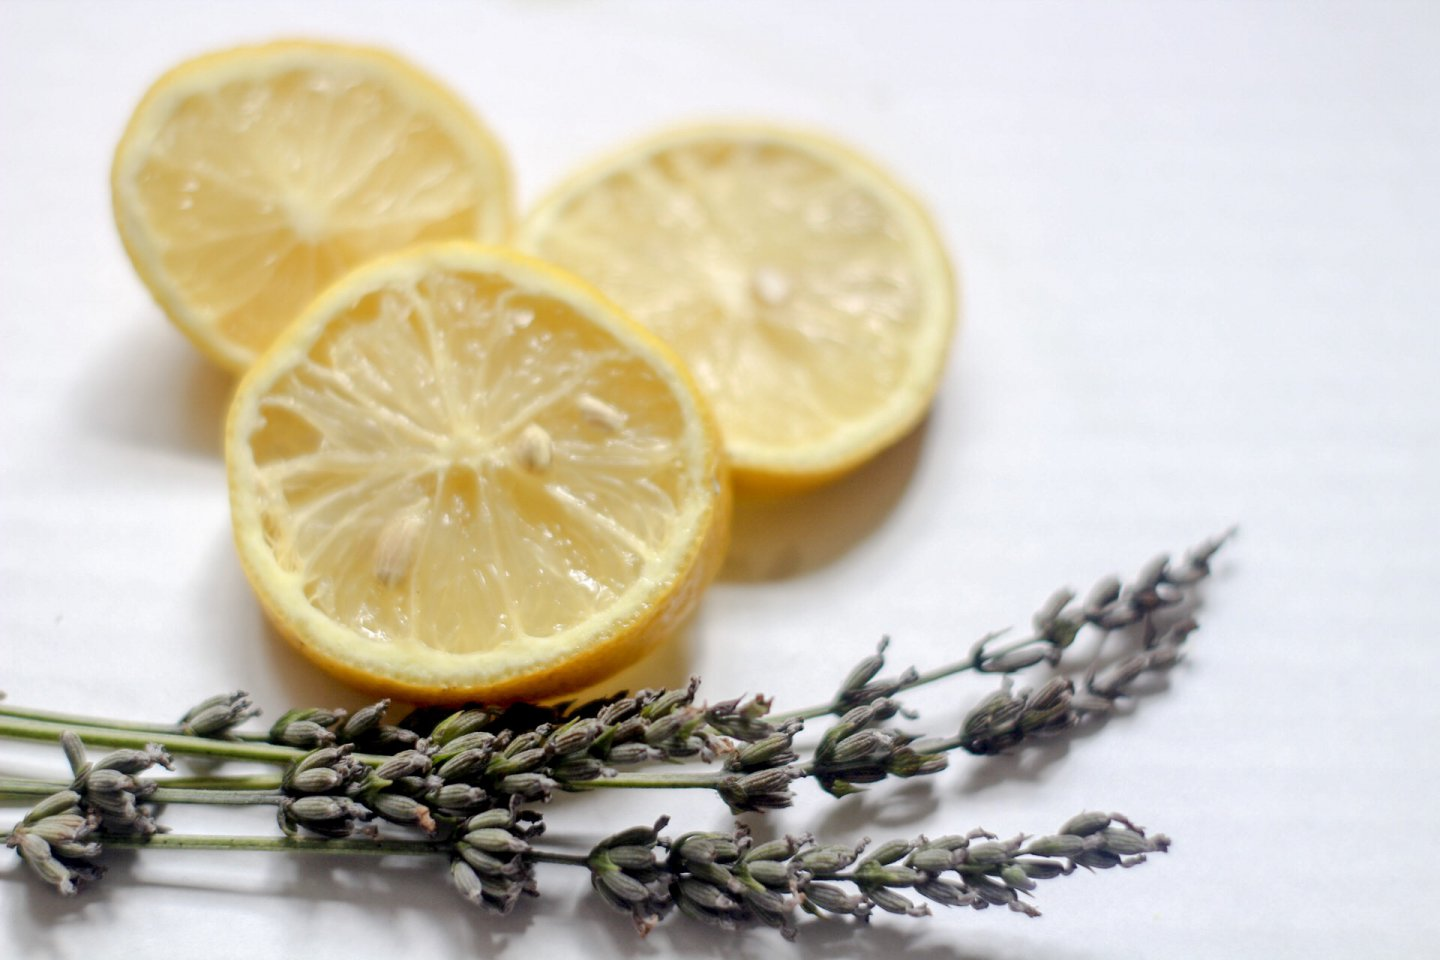 Want to Stay Zen AF? Get Some Lavender and Lemon Oil.